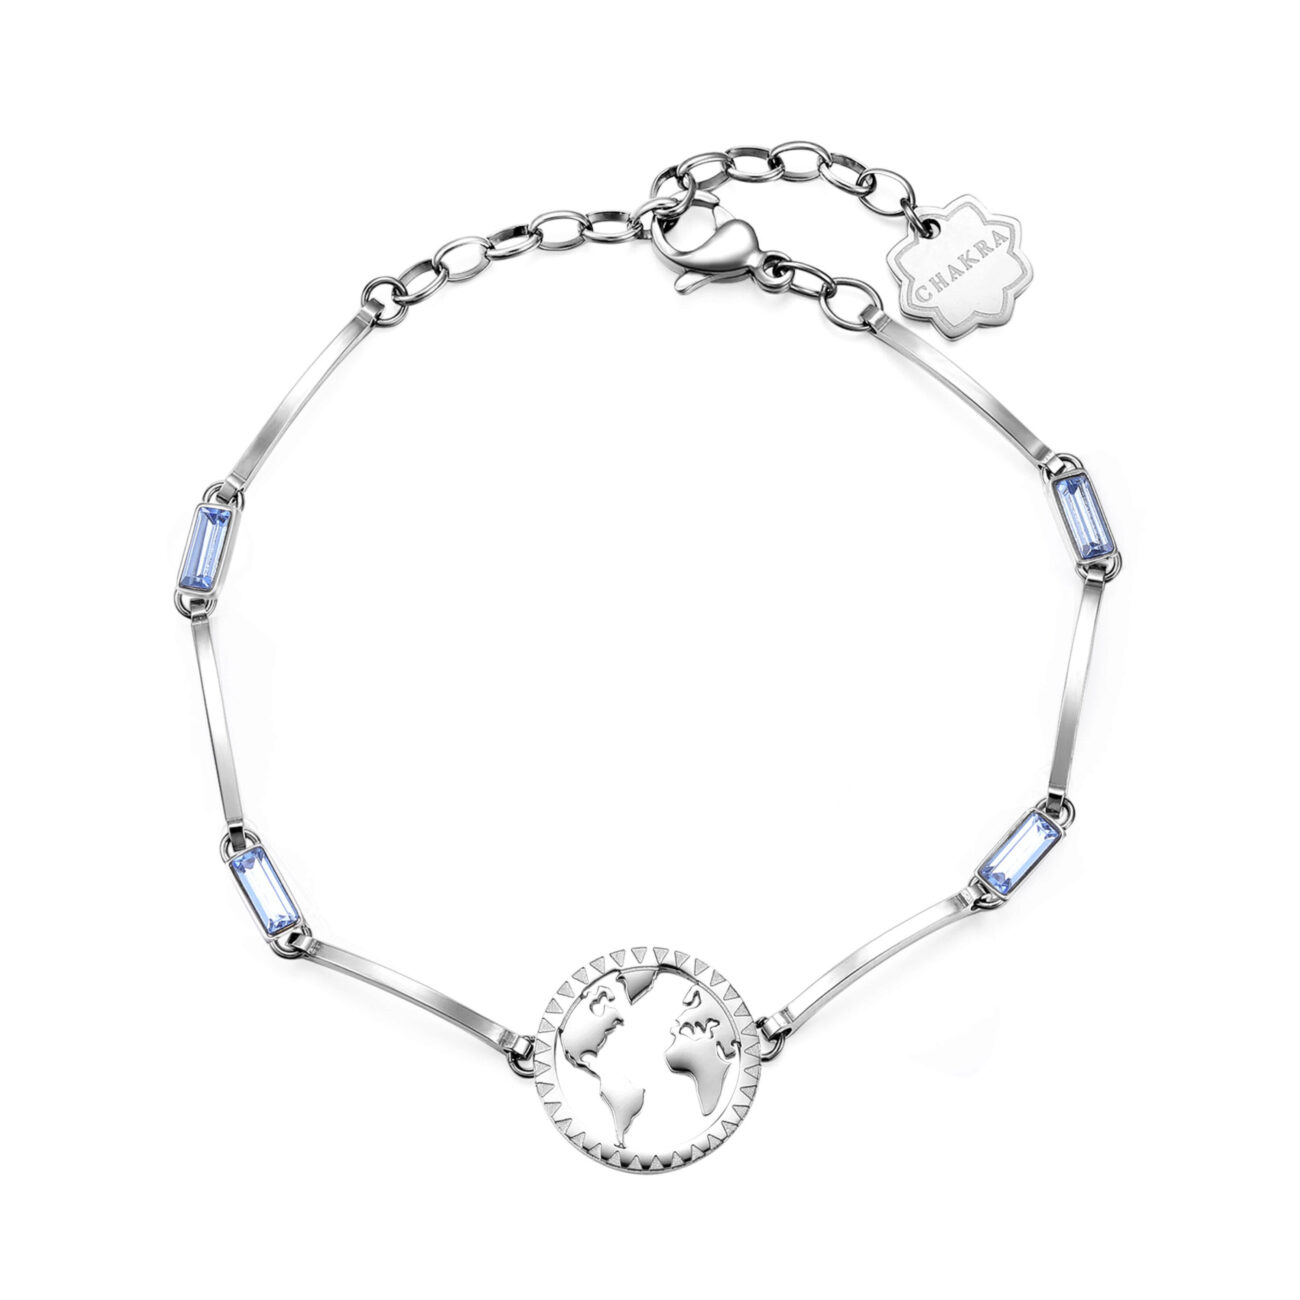 WORLD: TRAVEL, DISCOVER, REMEMBER Go where others have never gone before. Travel with your heart and mind and discover remote places you never knew existed. The path you travel will leave its mark on your soul.316L stainless steel bracelet with light sapphire crystals.